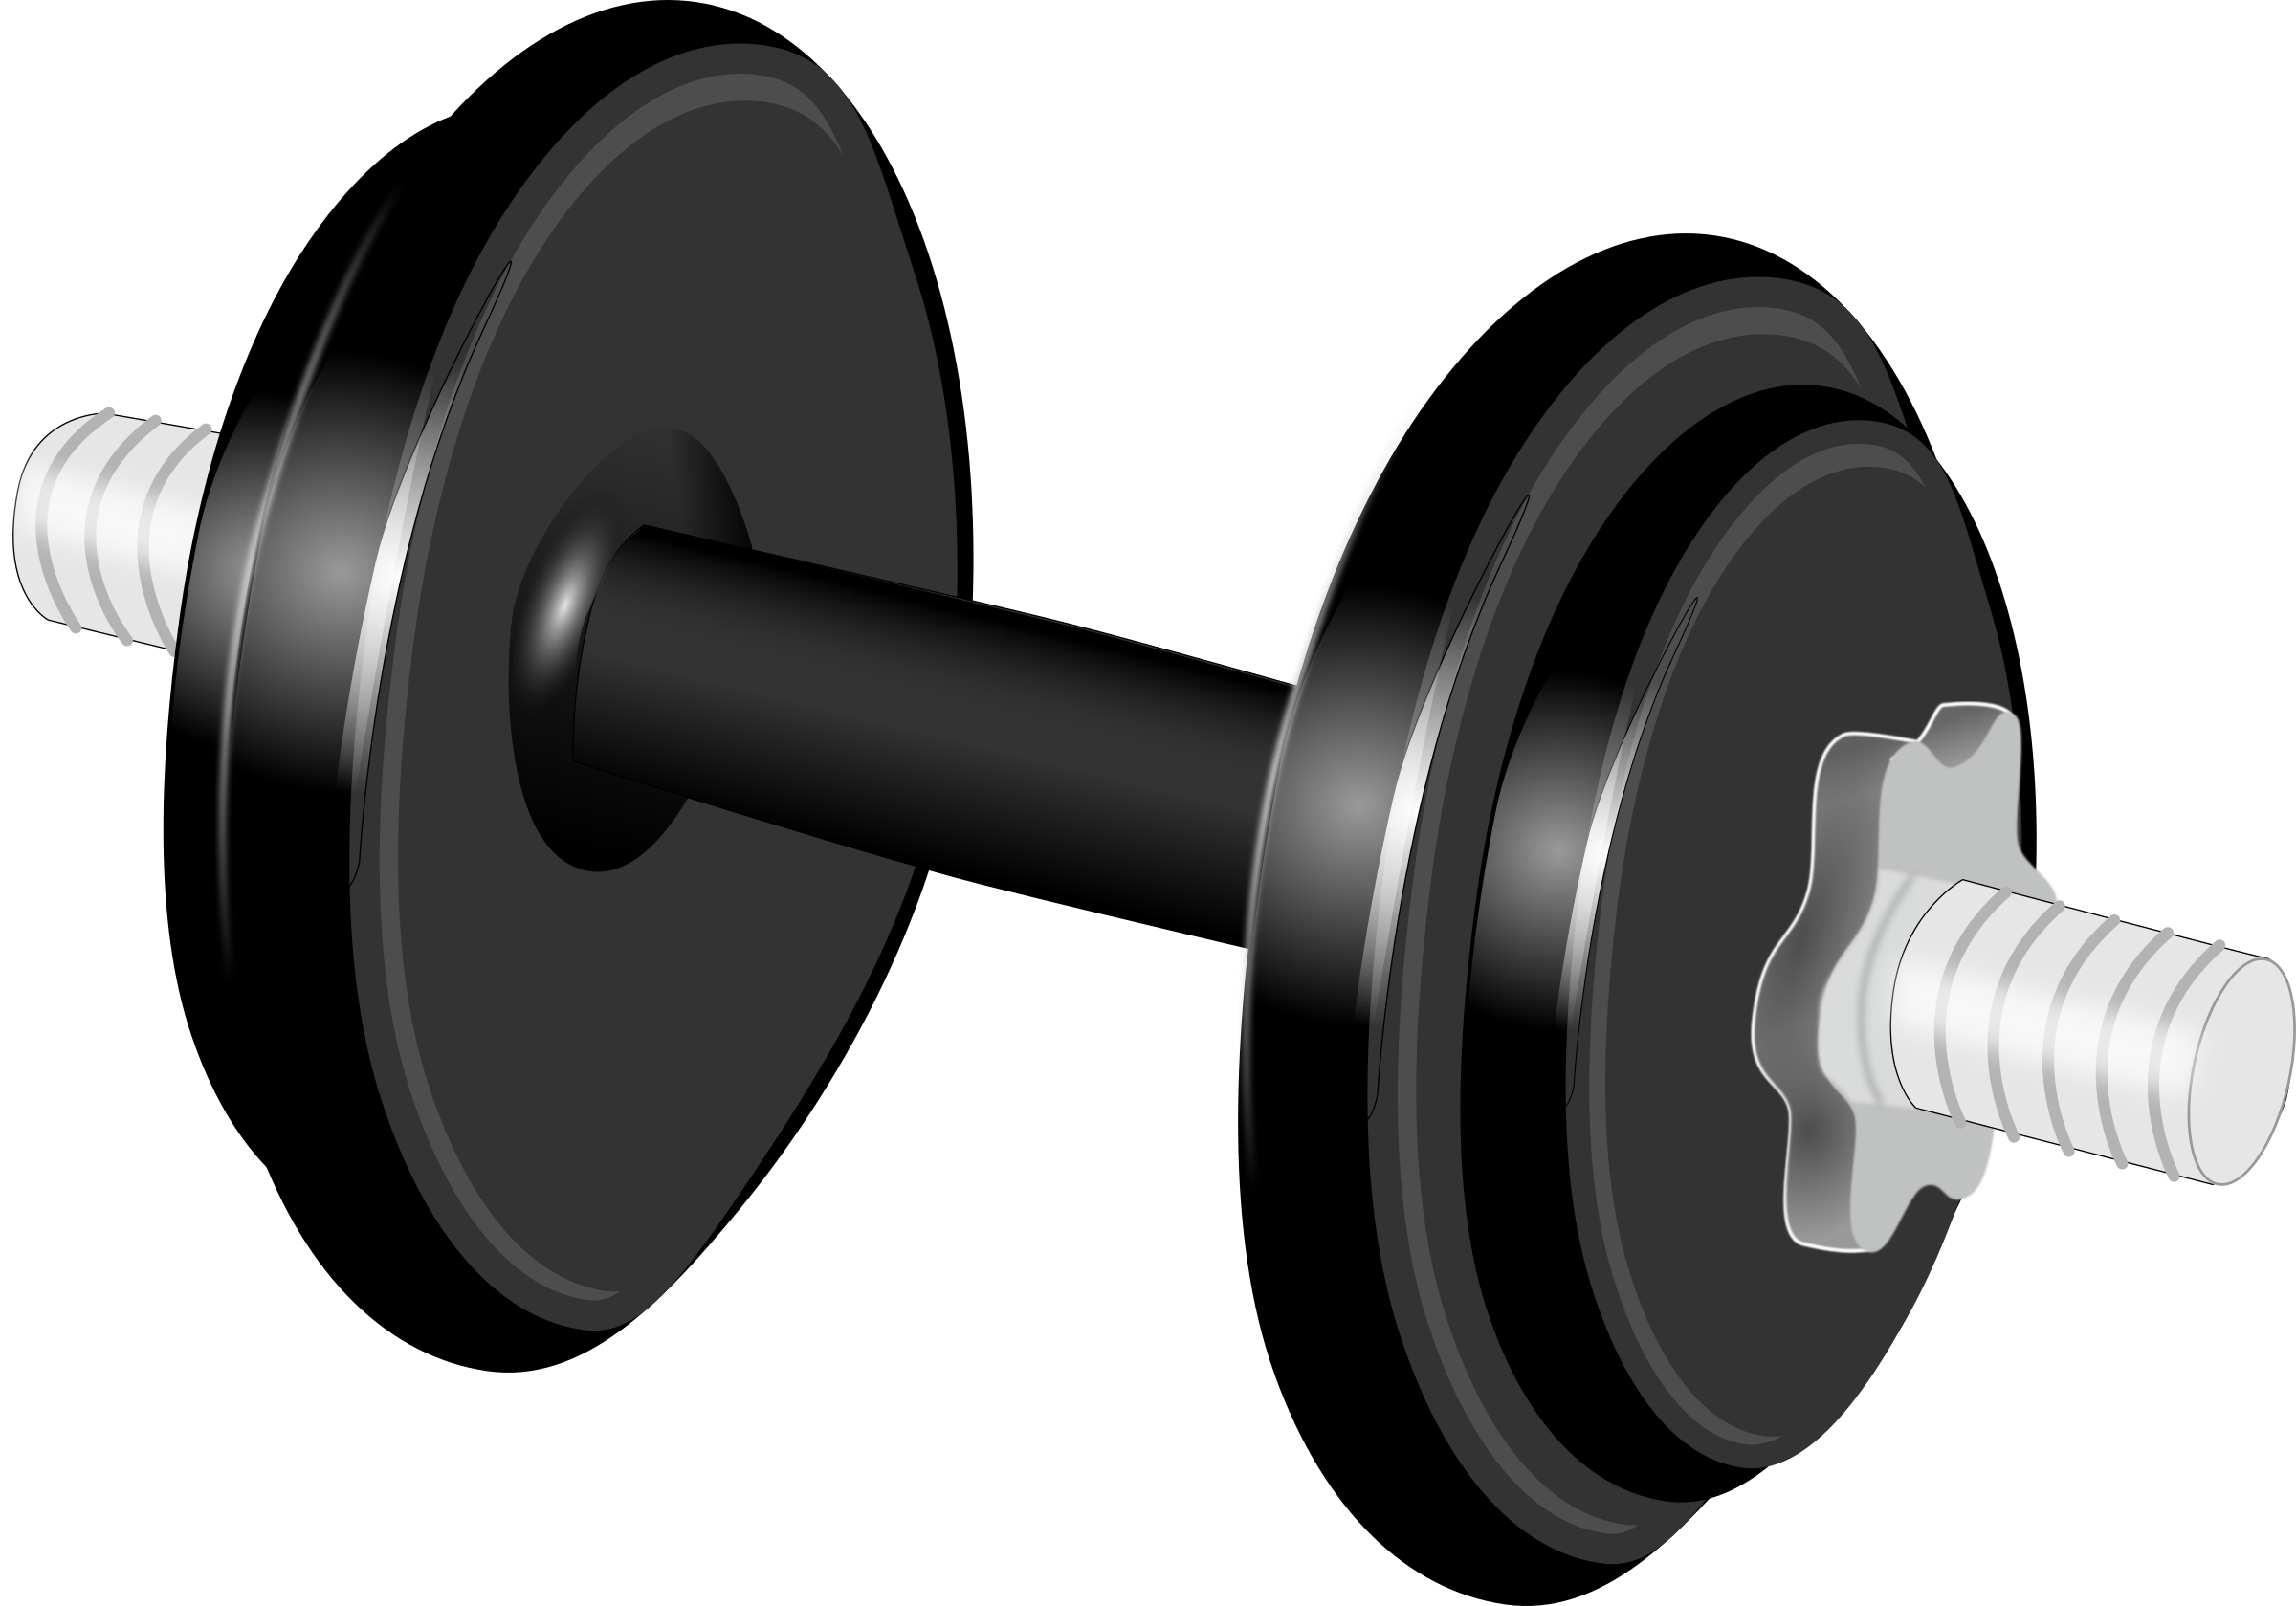 Dumbbell hantel png image. Weight clipart invisible background